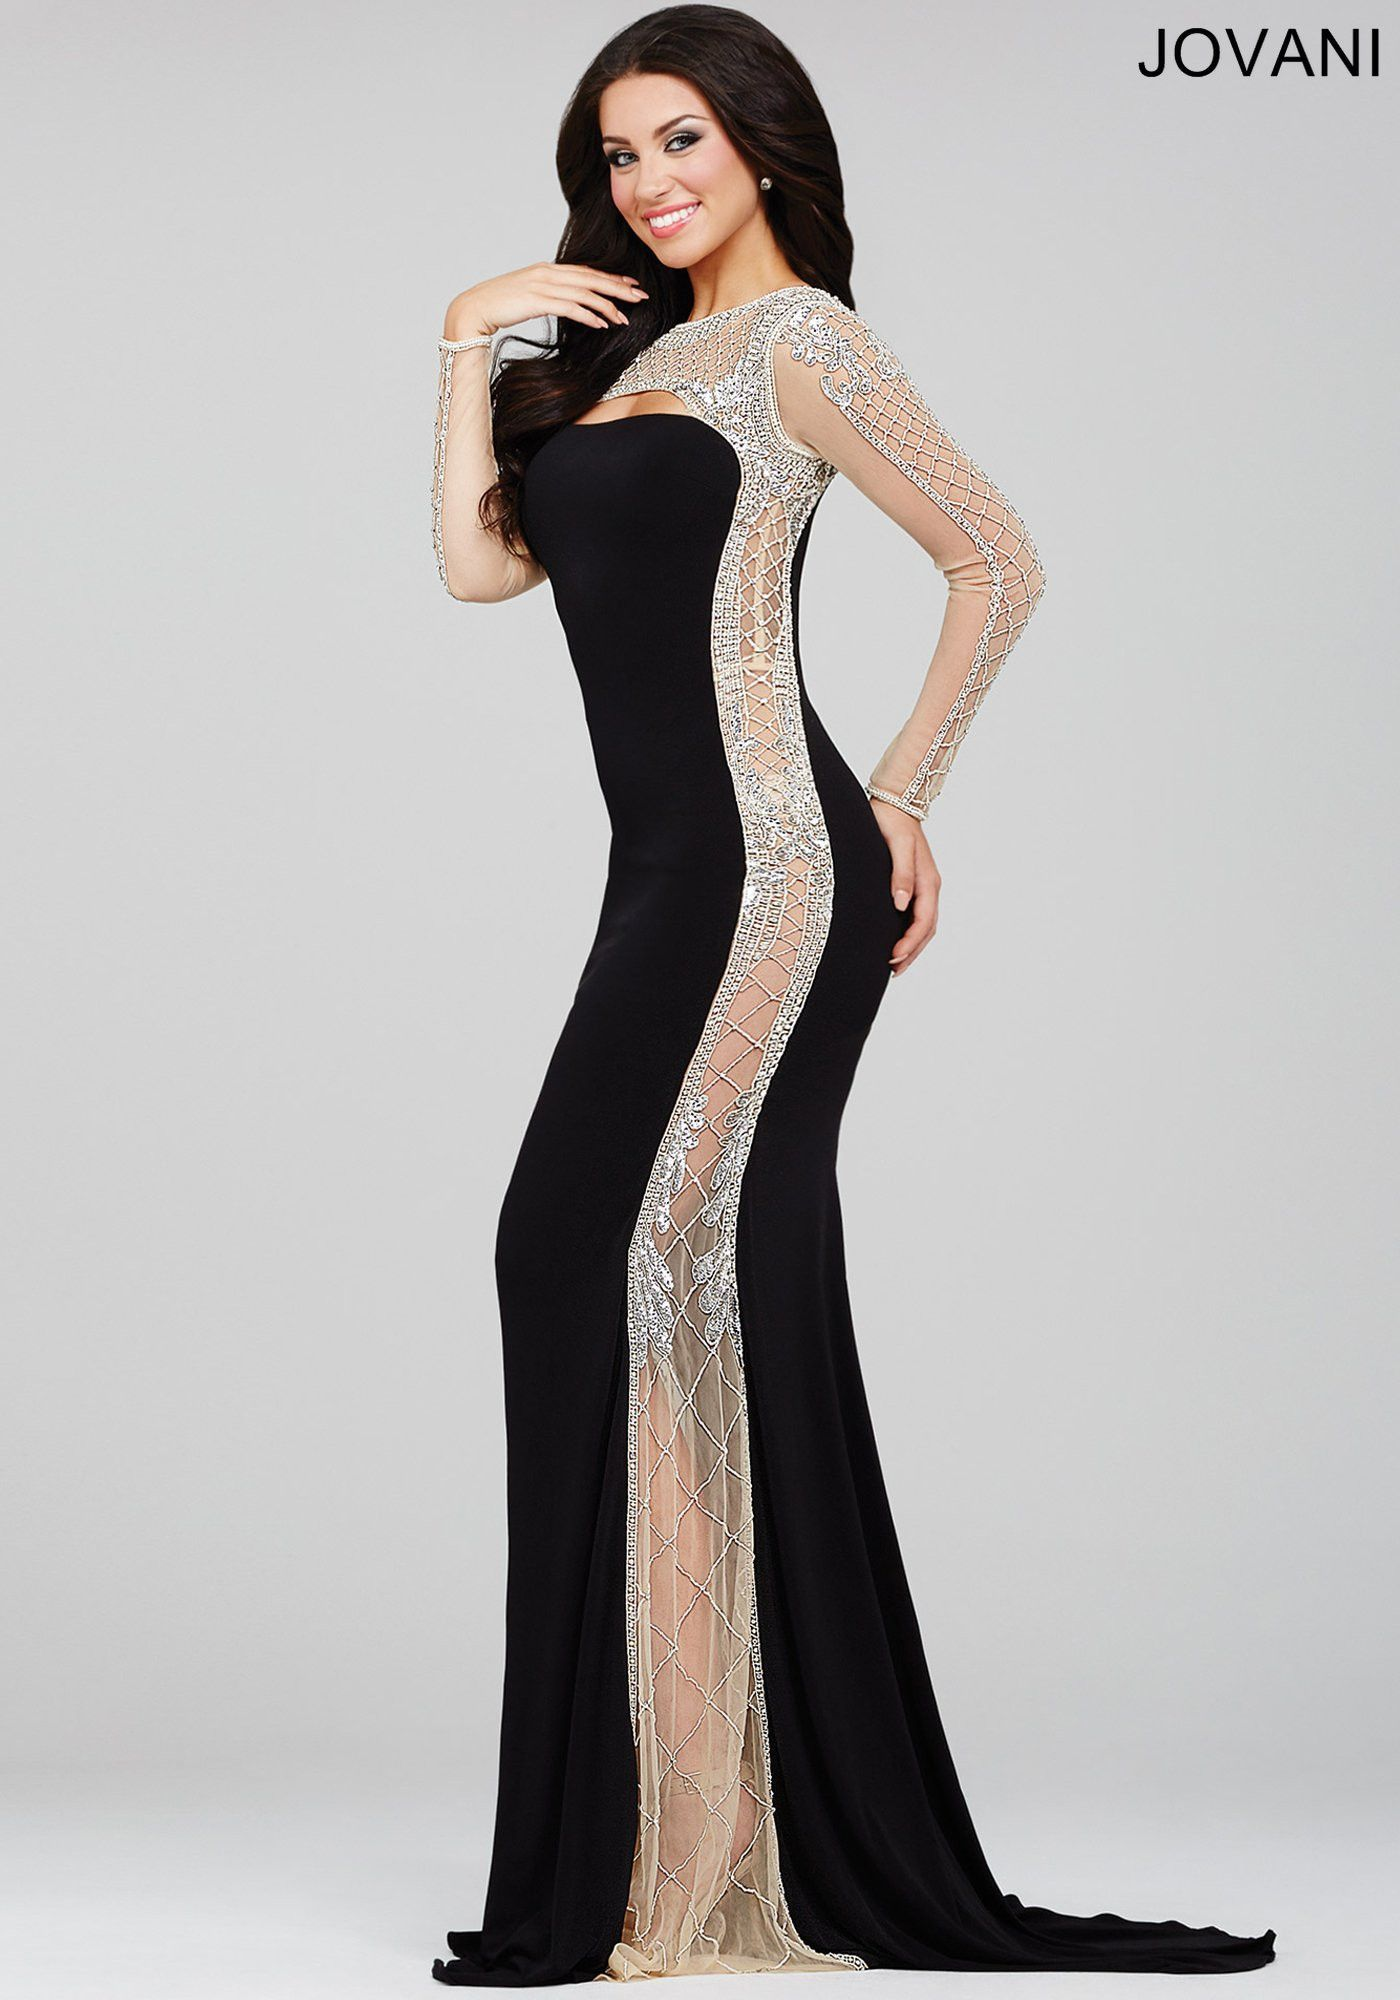 Jovani 22954 In Stock Black/Nude Size 6 Long Sleeve Evening Gown ...